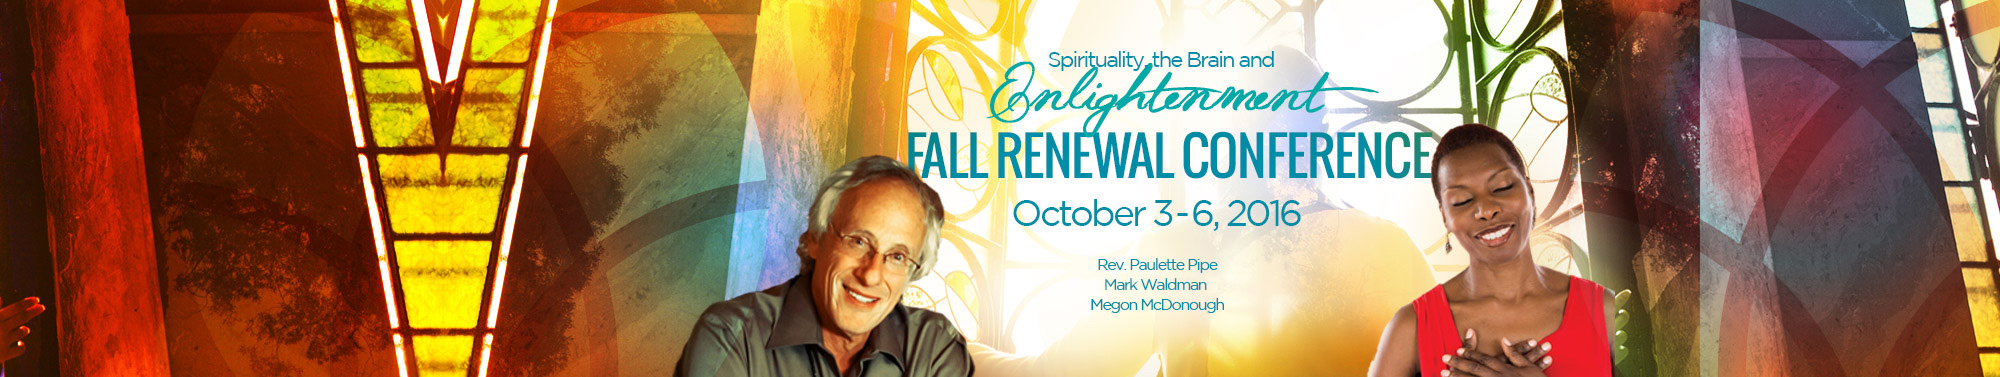 2016 Fall Renewal Conference